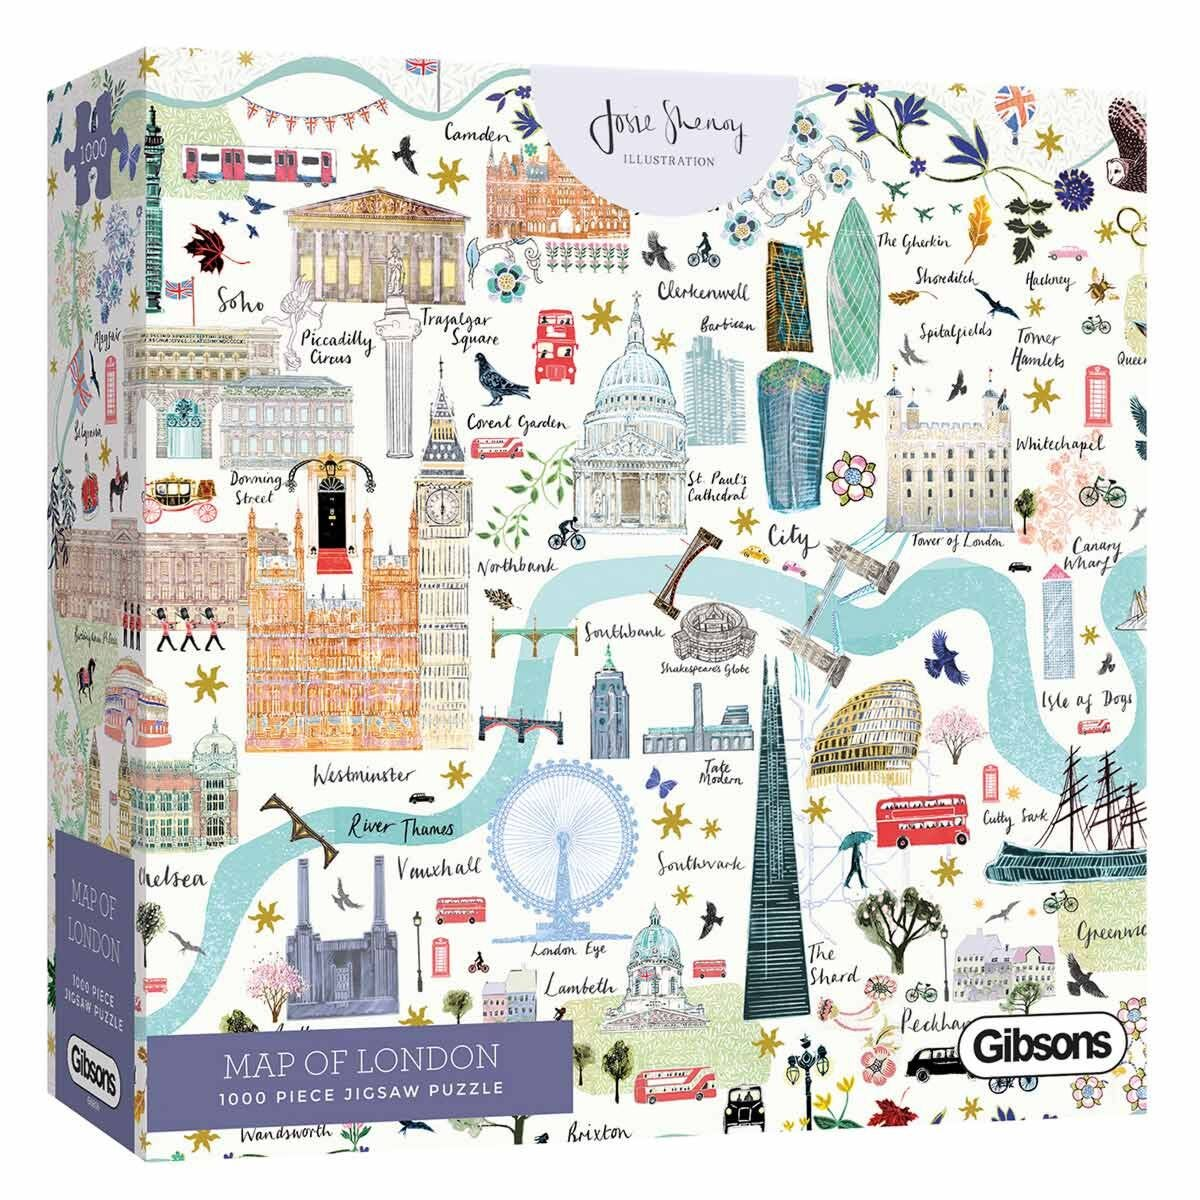 Gibsons Map of London 1000 Piece Jigsaw Puzzle